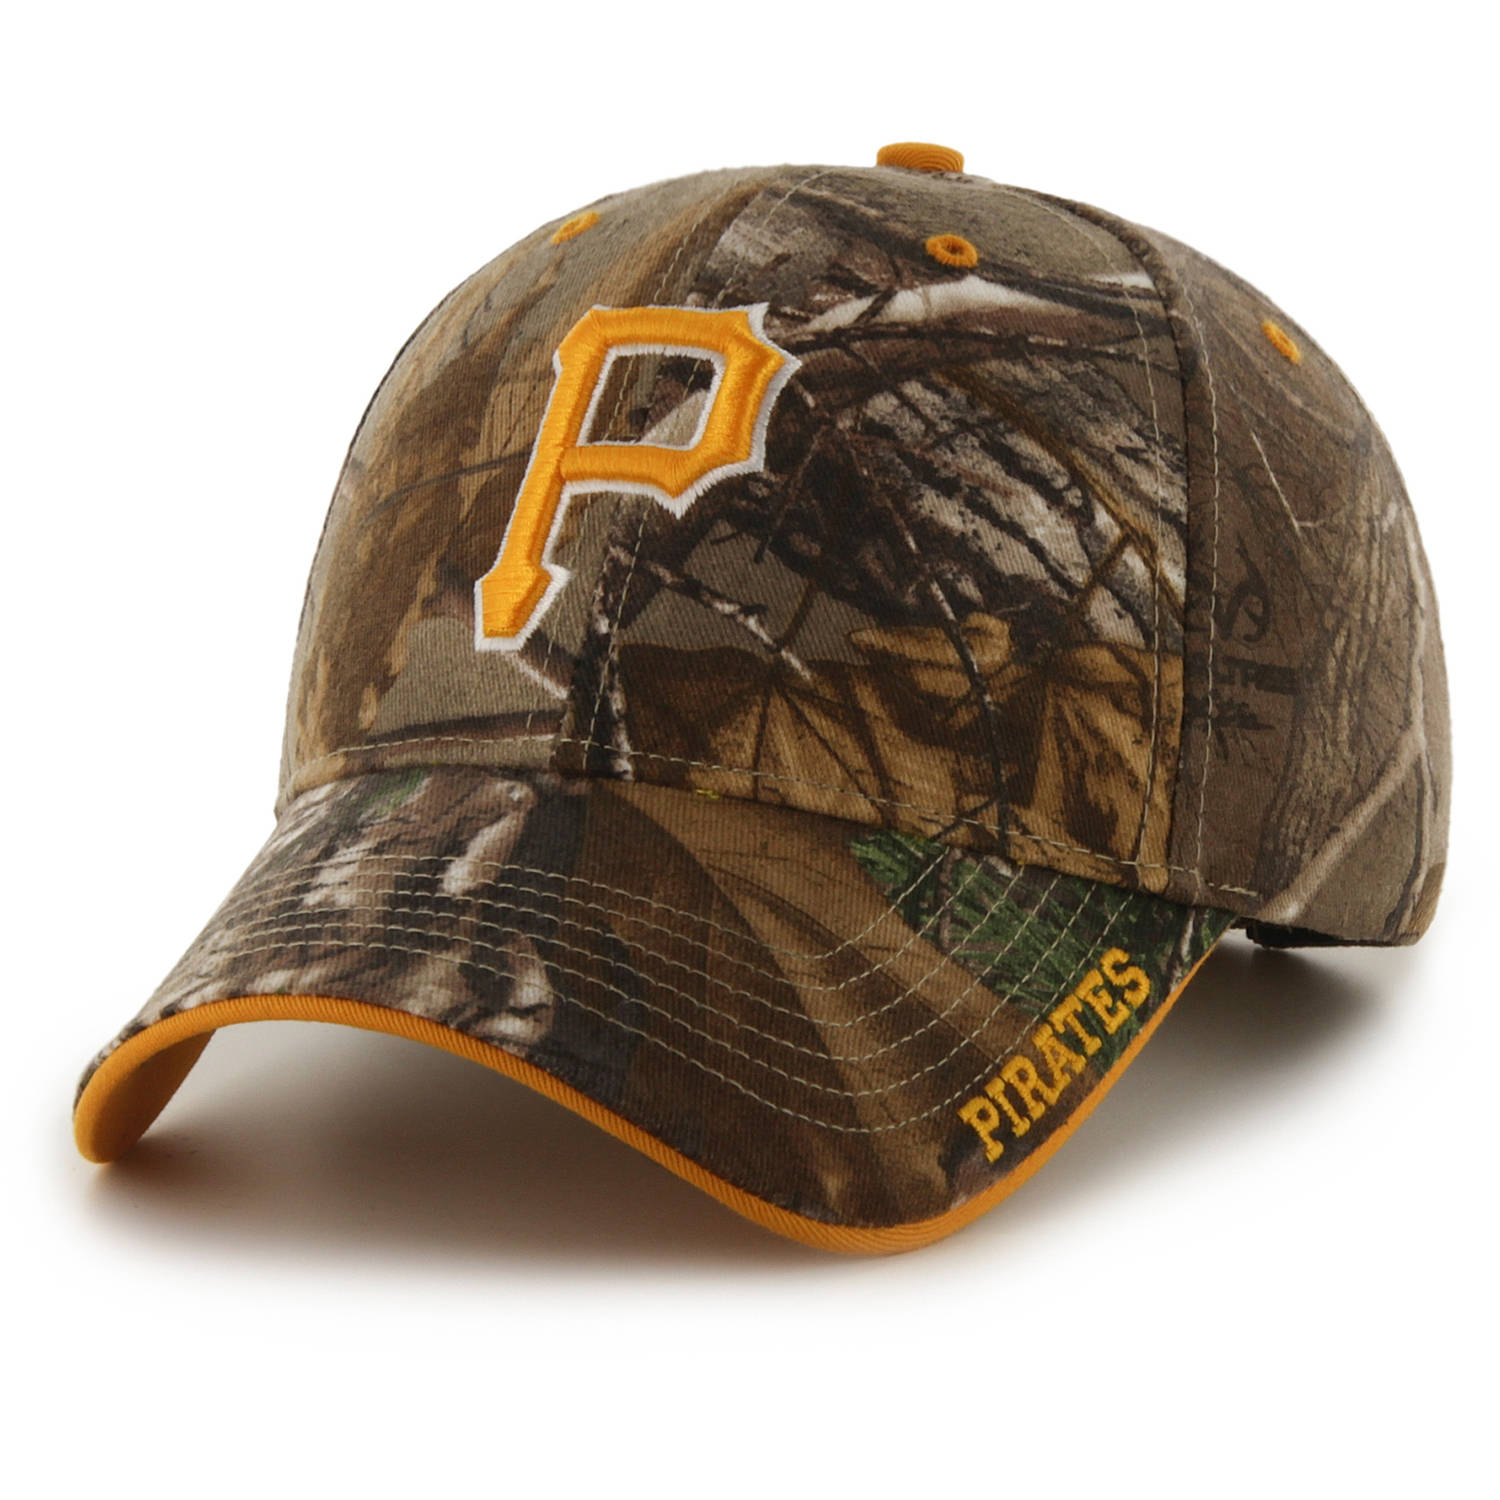 MLB Pittsburgh Pirates Realtree Frost Cap / Hat by Fan Favorite